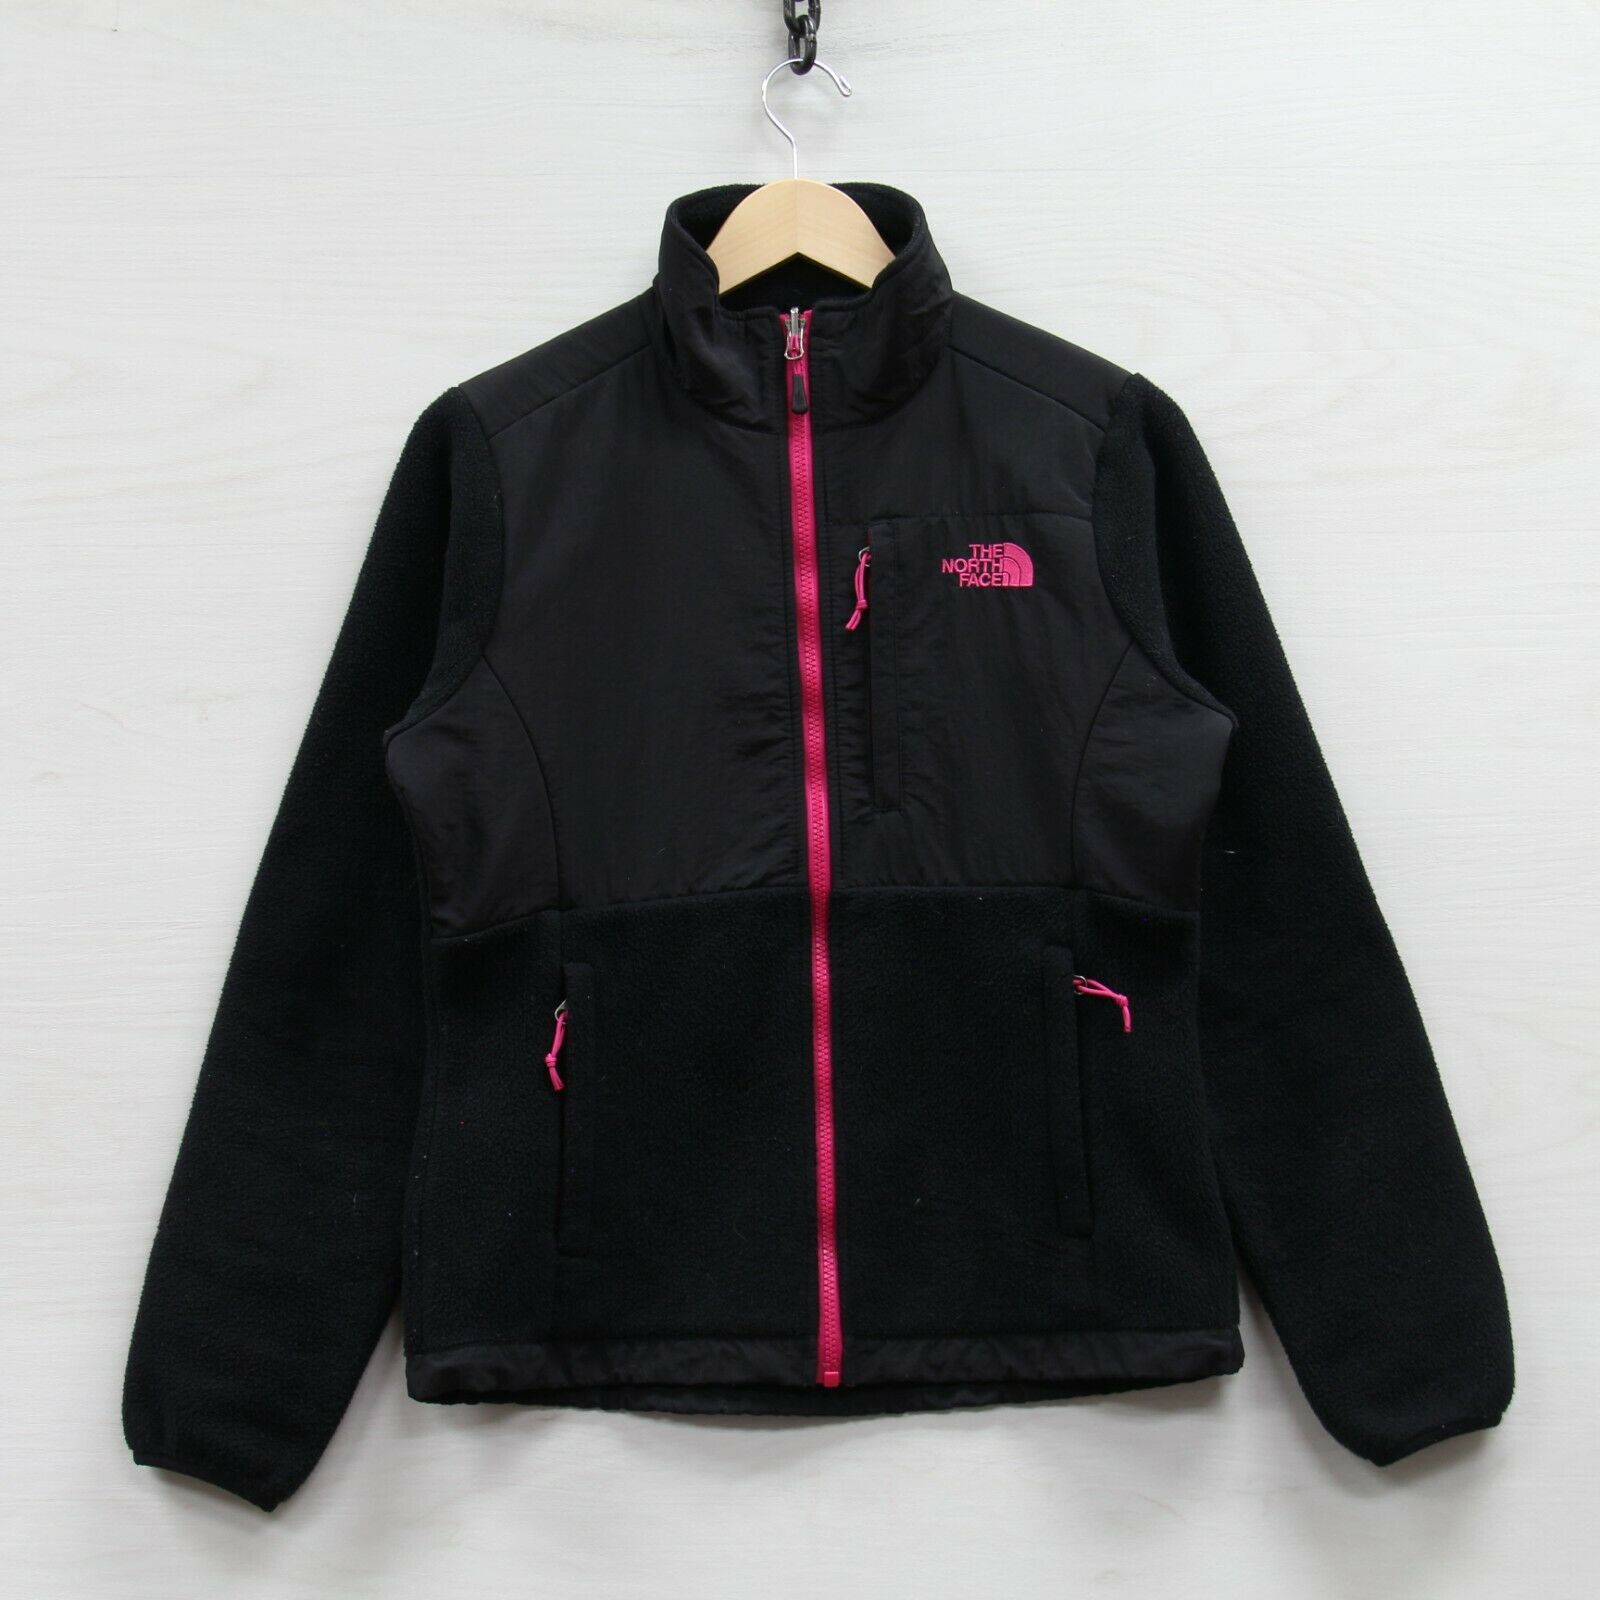 The North Face Denali Fleece Jacket Womens Size Small Black & Pink